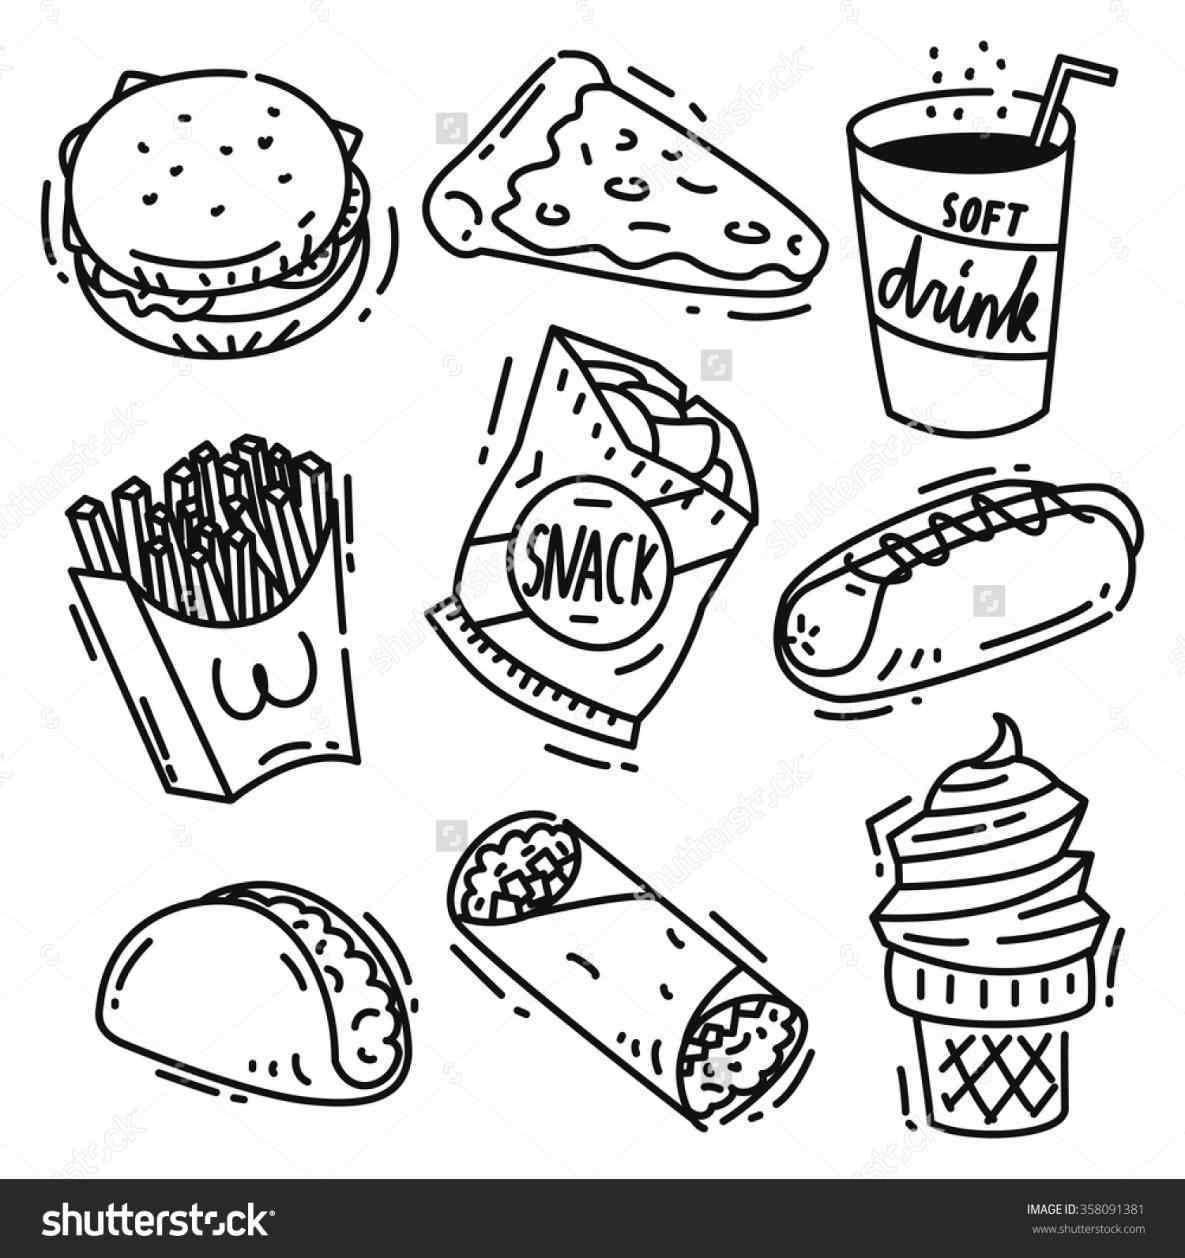 Unhealthy Food Clipart Black And White.